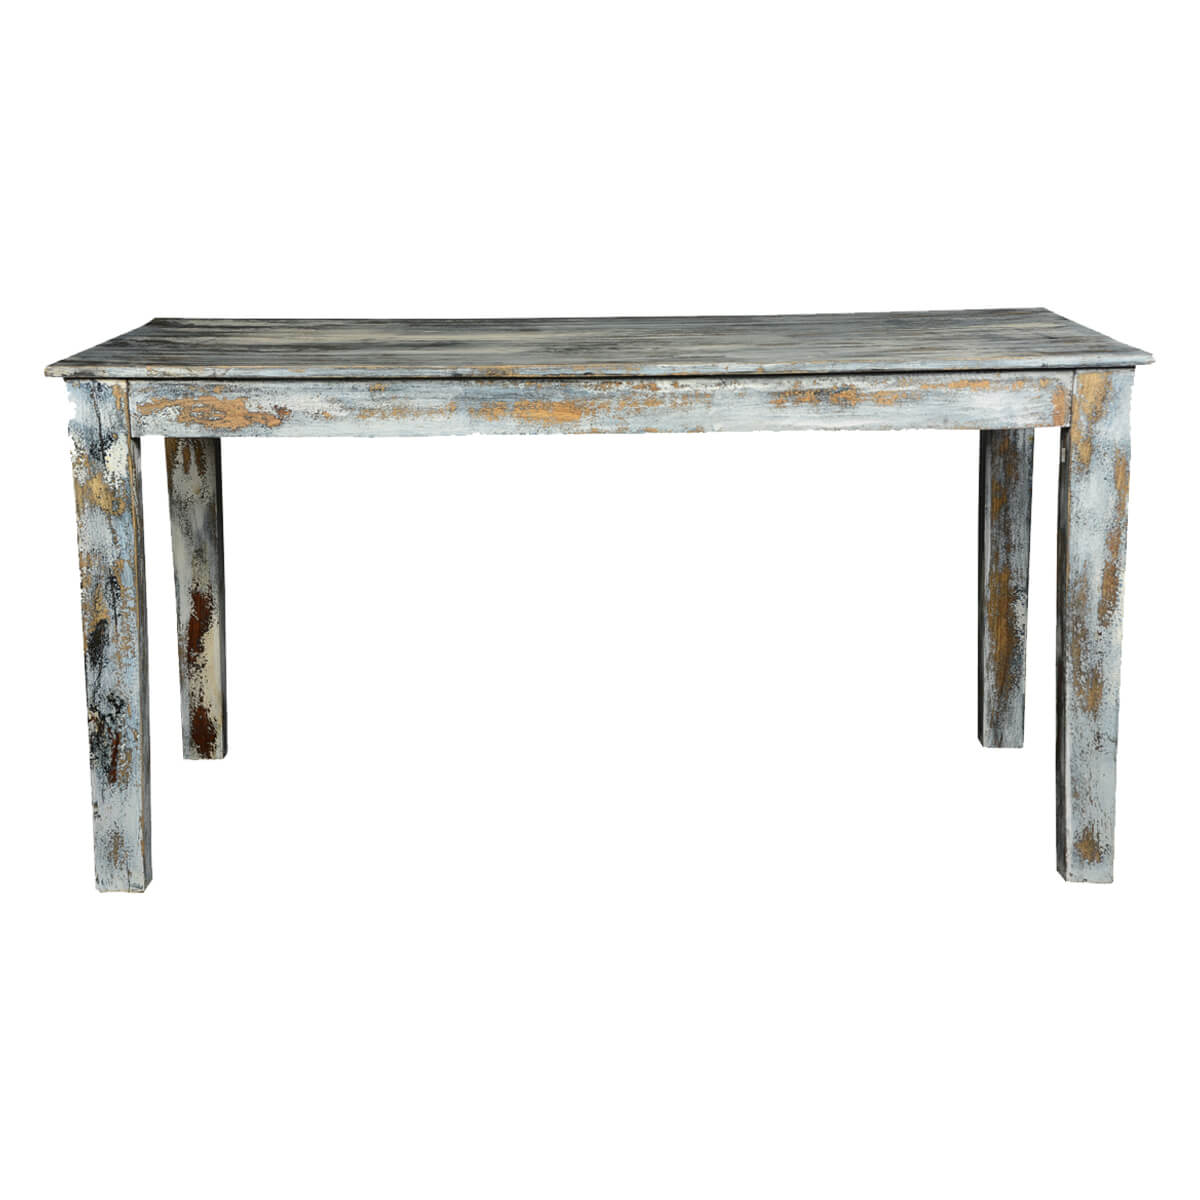 grey wood kitchen table bench seating speckled distressed dining